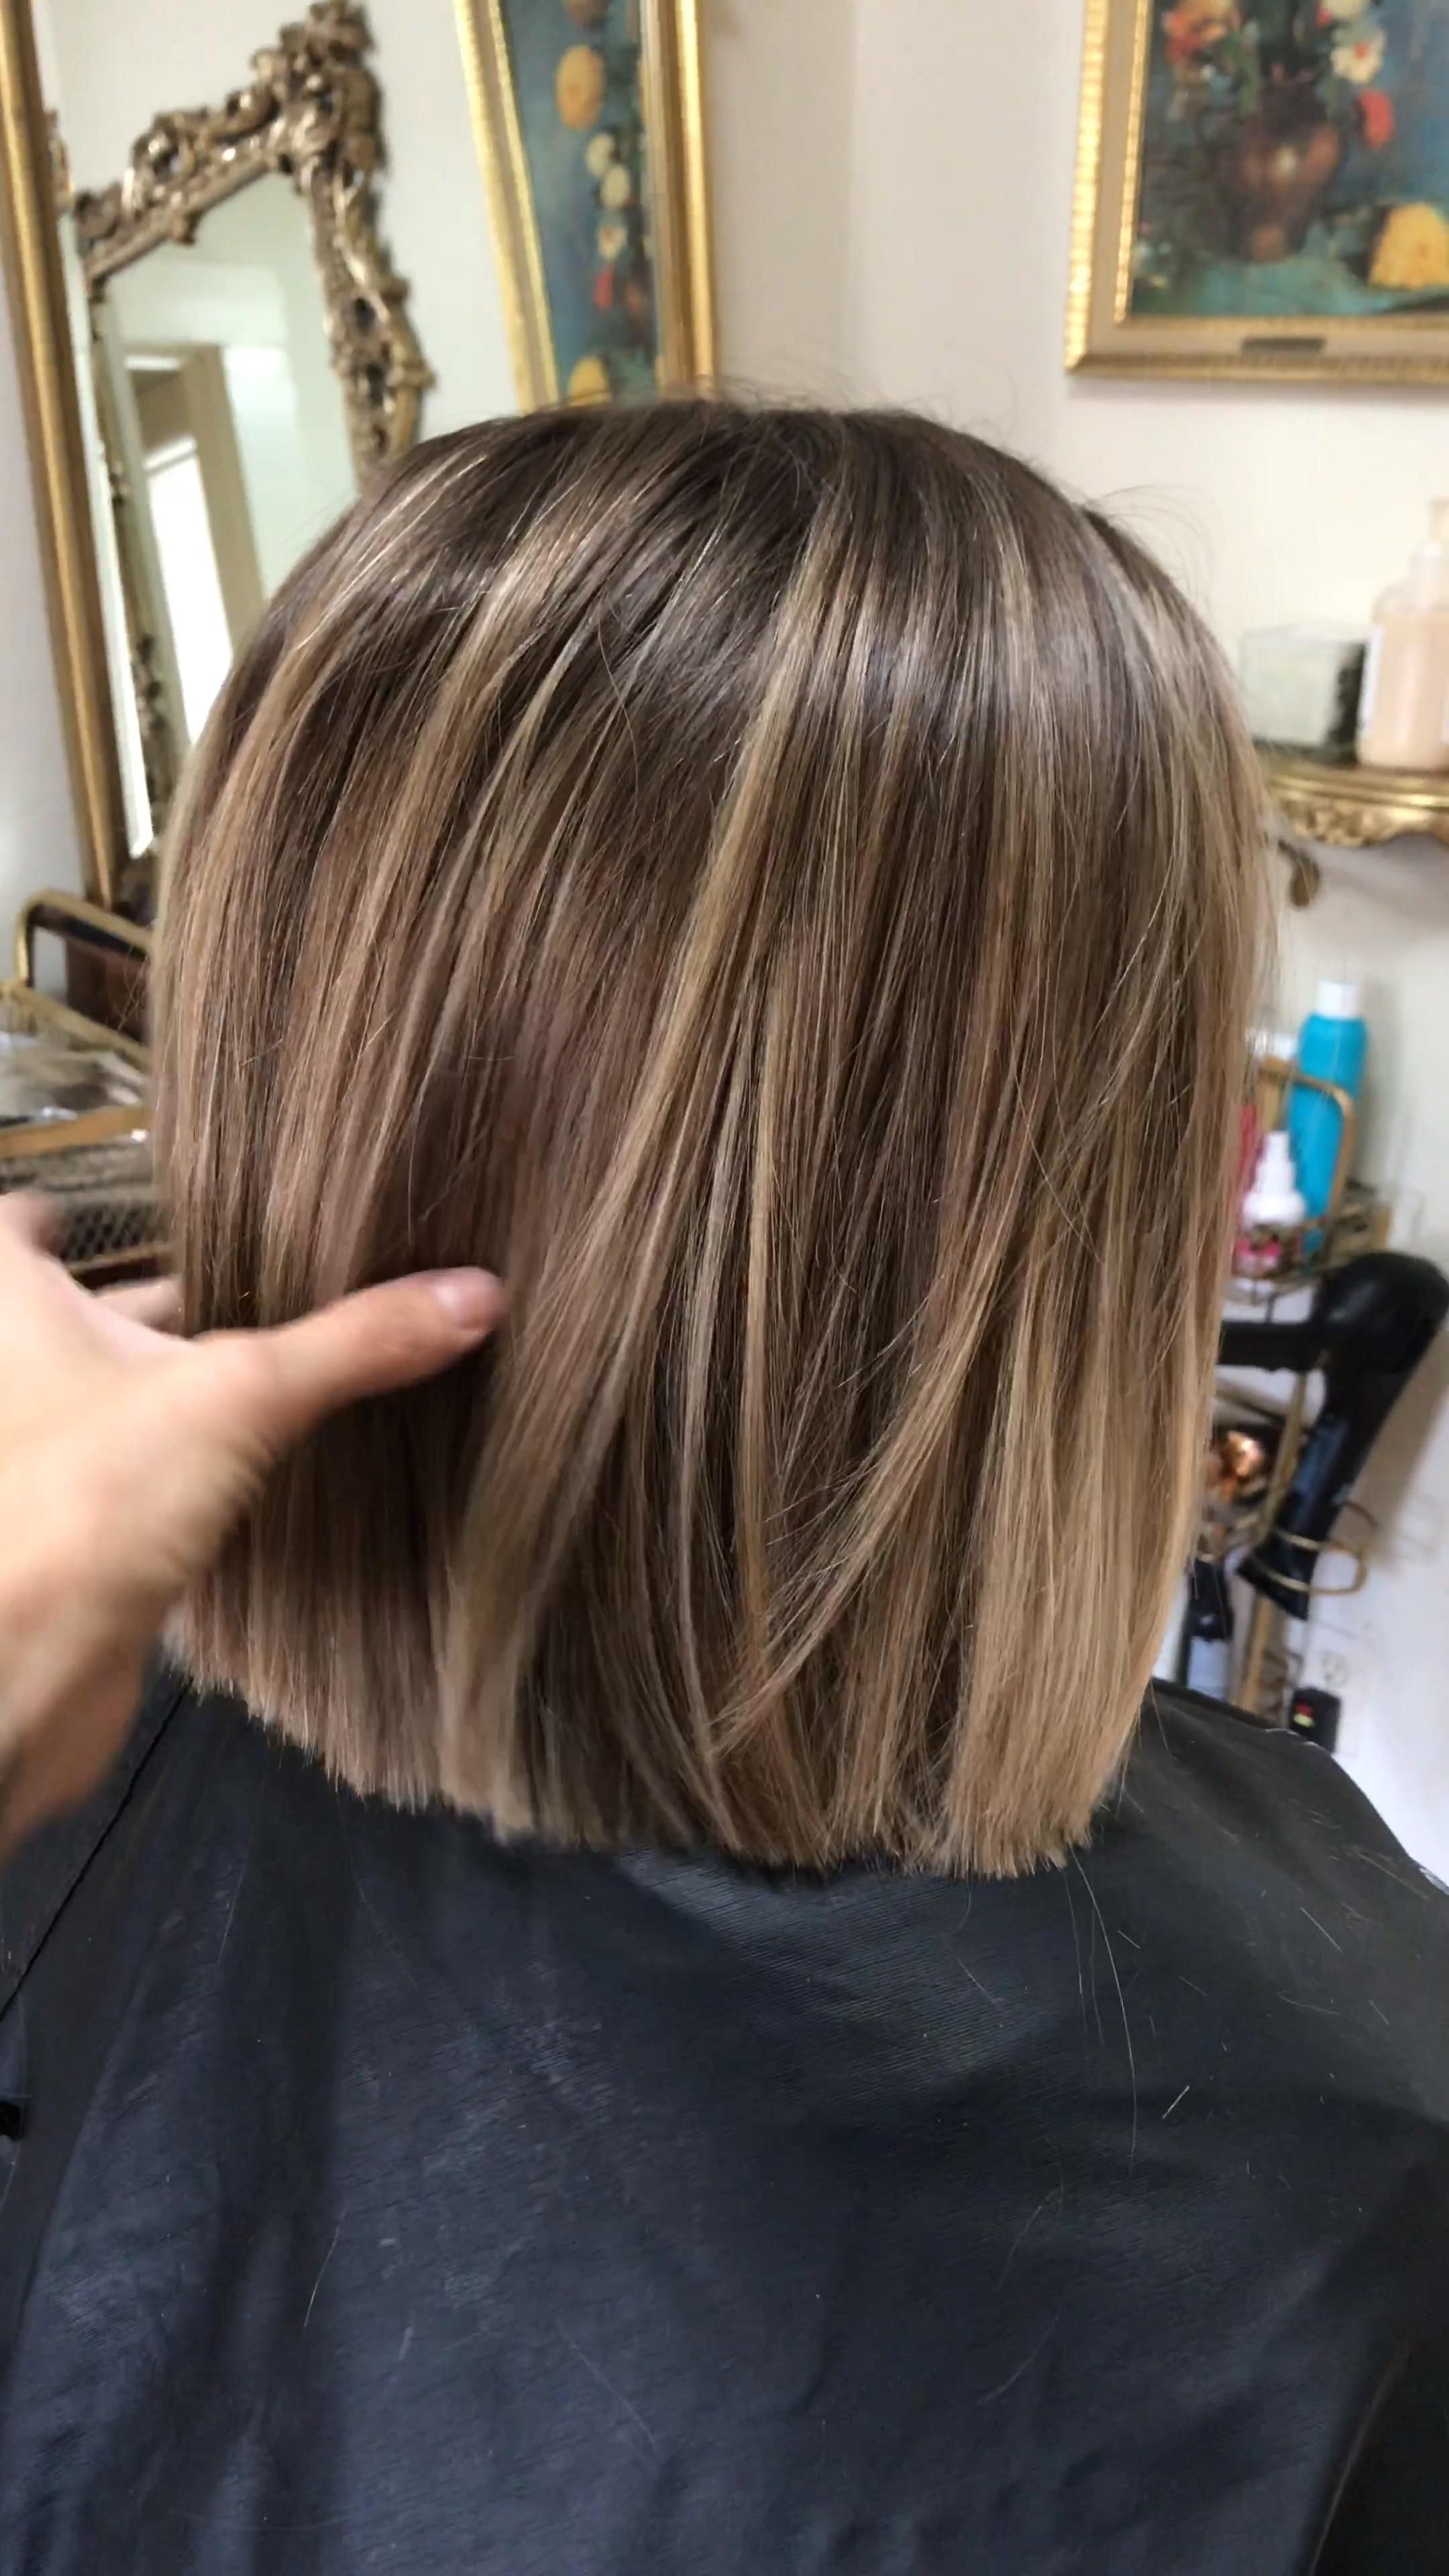 Bob haircut with soft blonde balayage